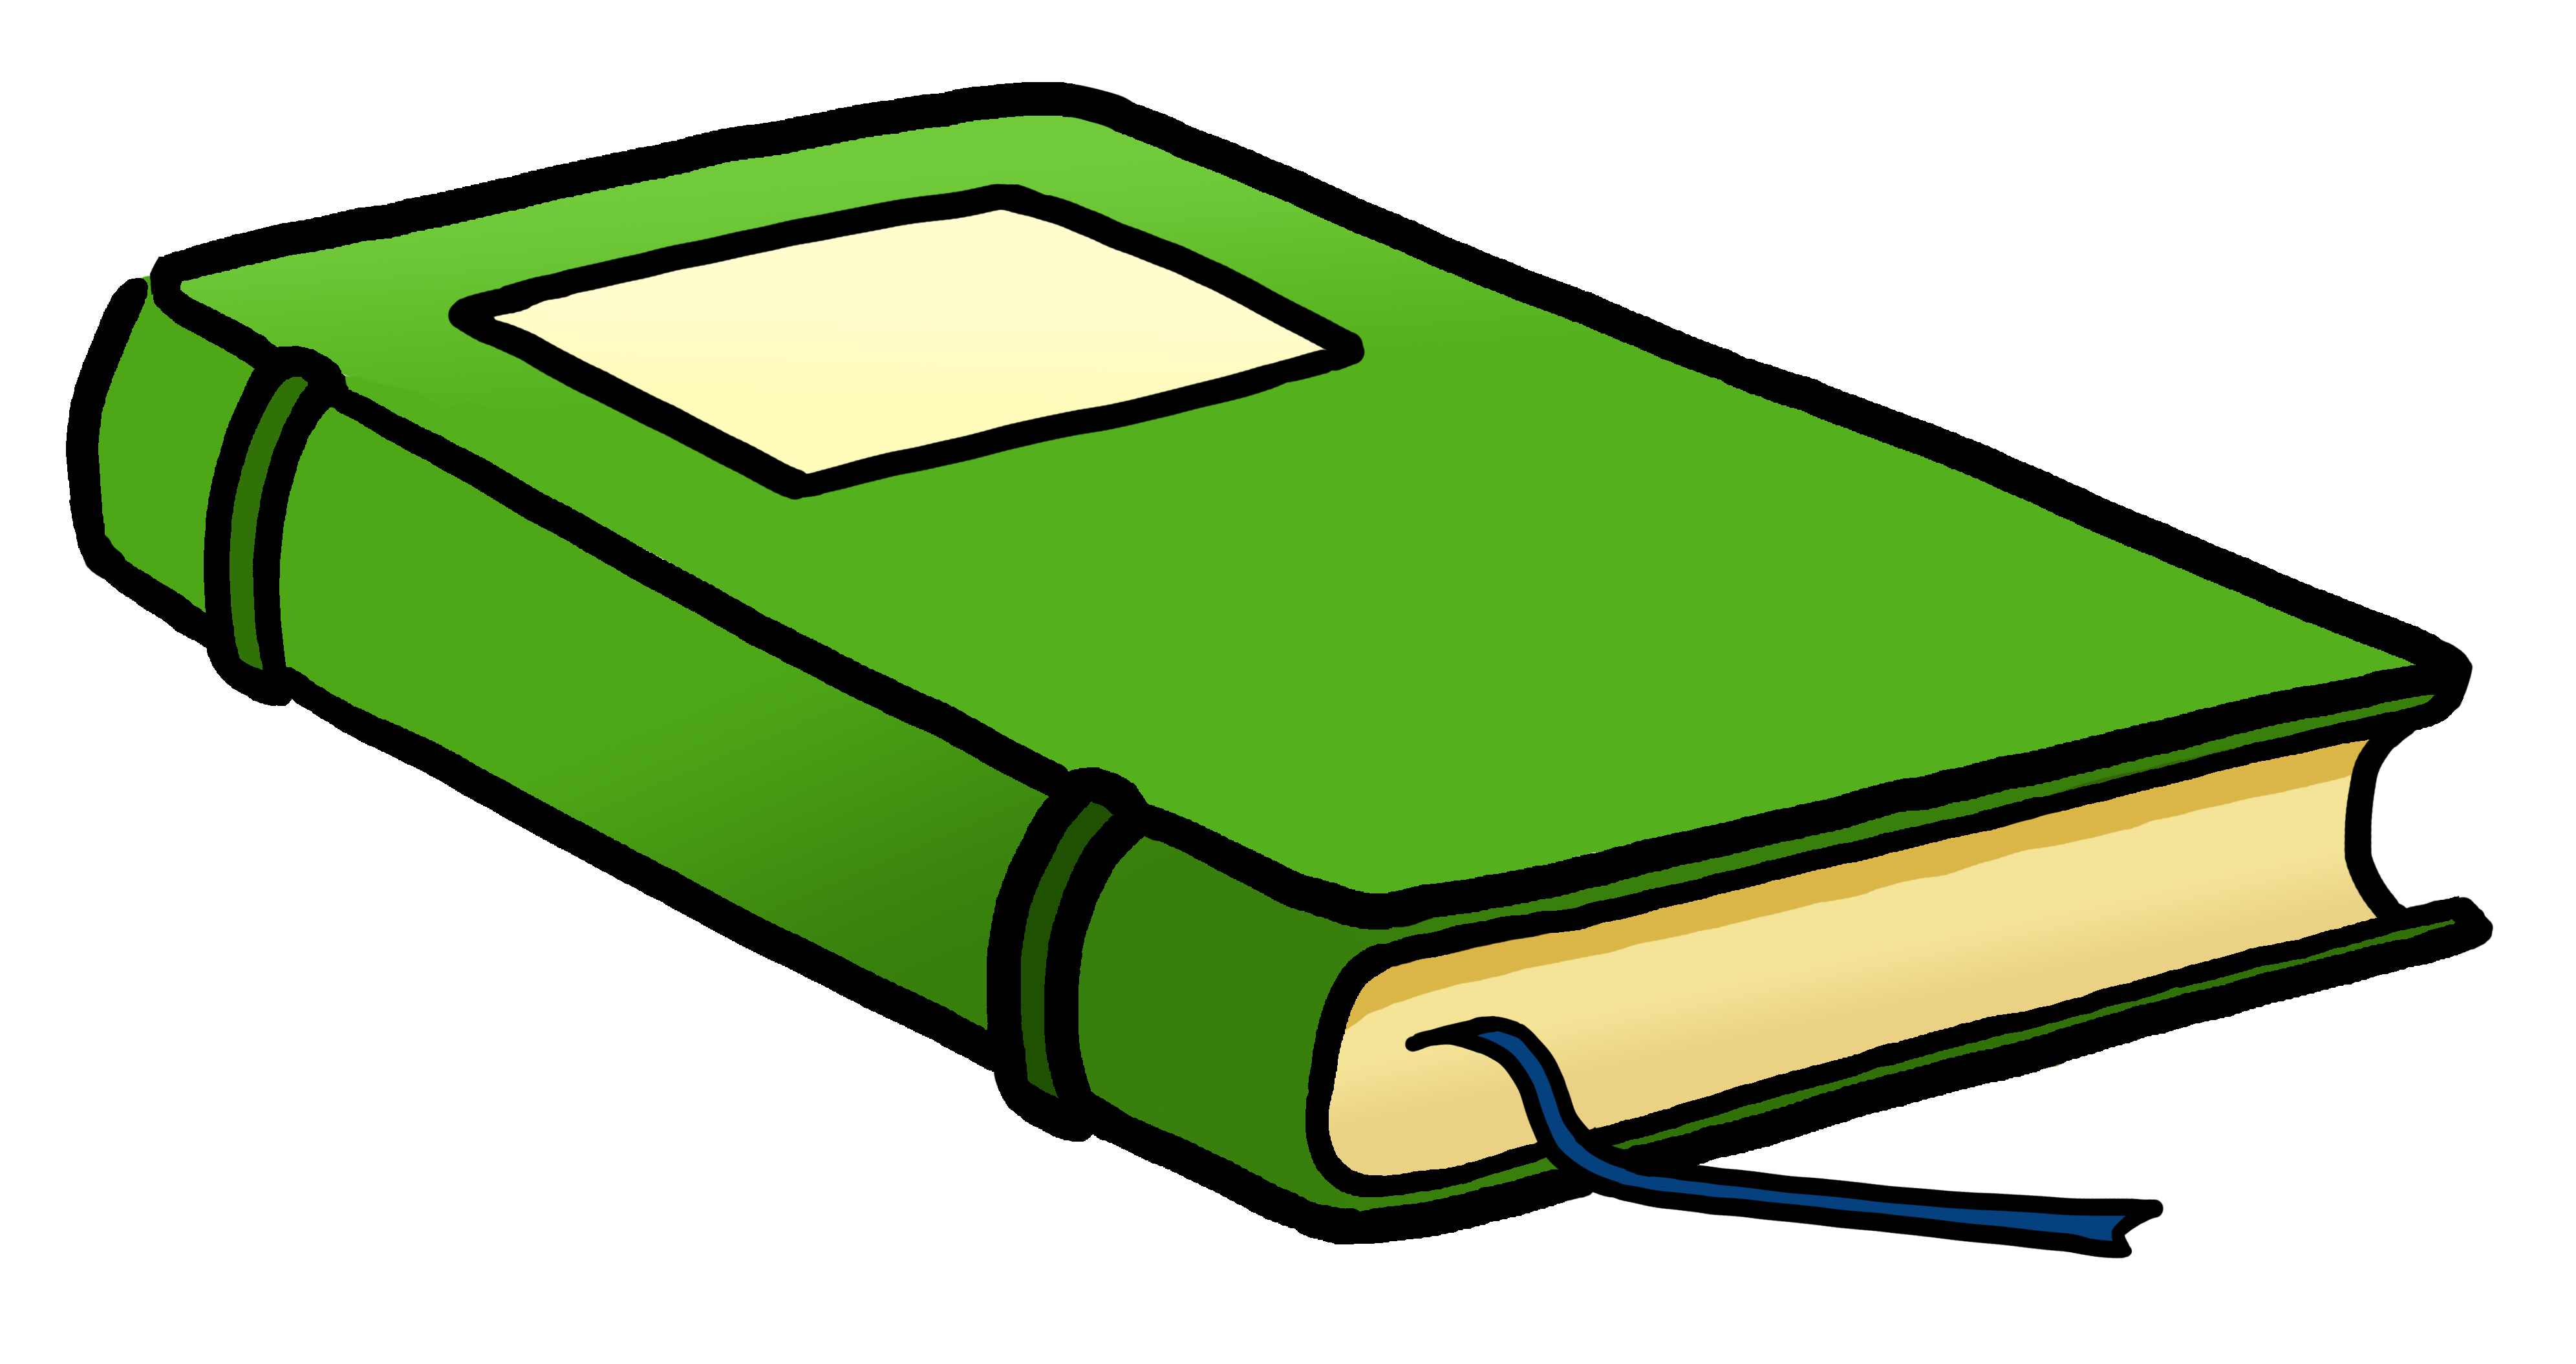 Clipart Of Books-clipart of books-15